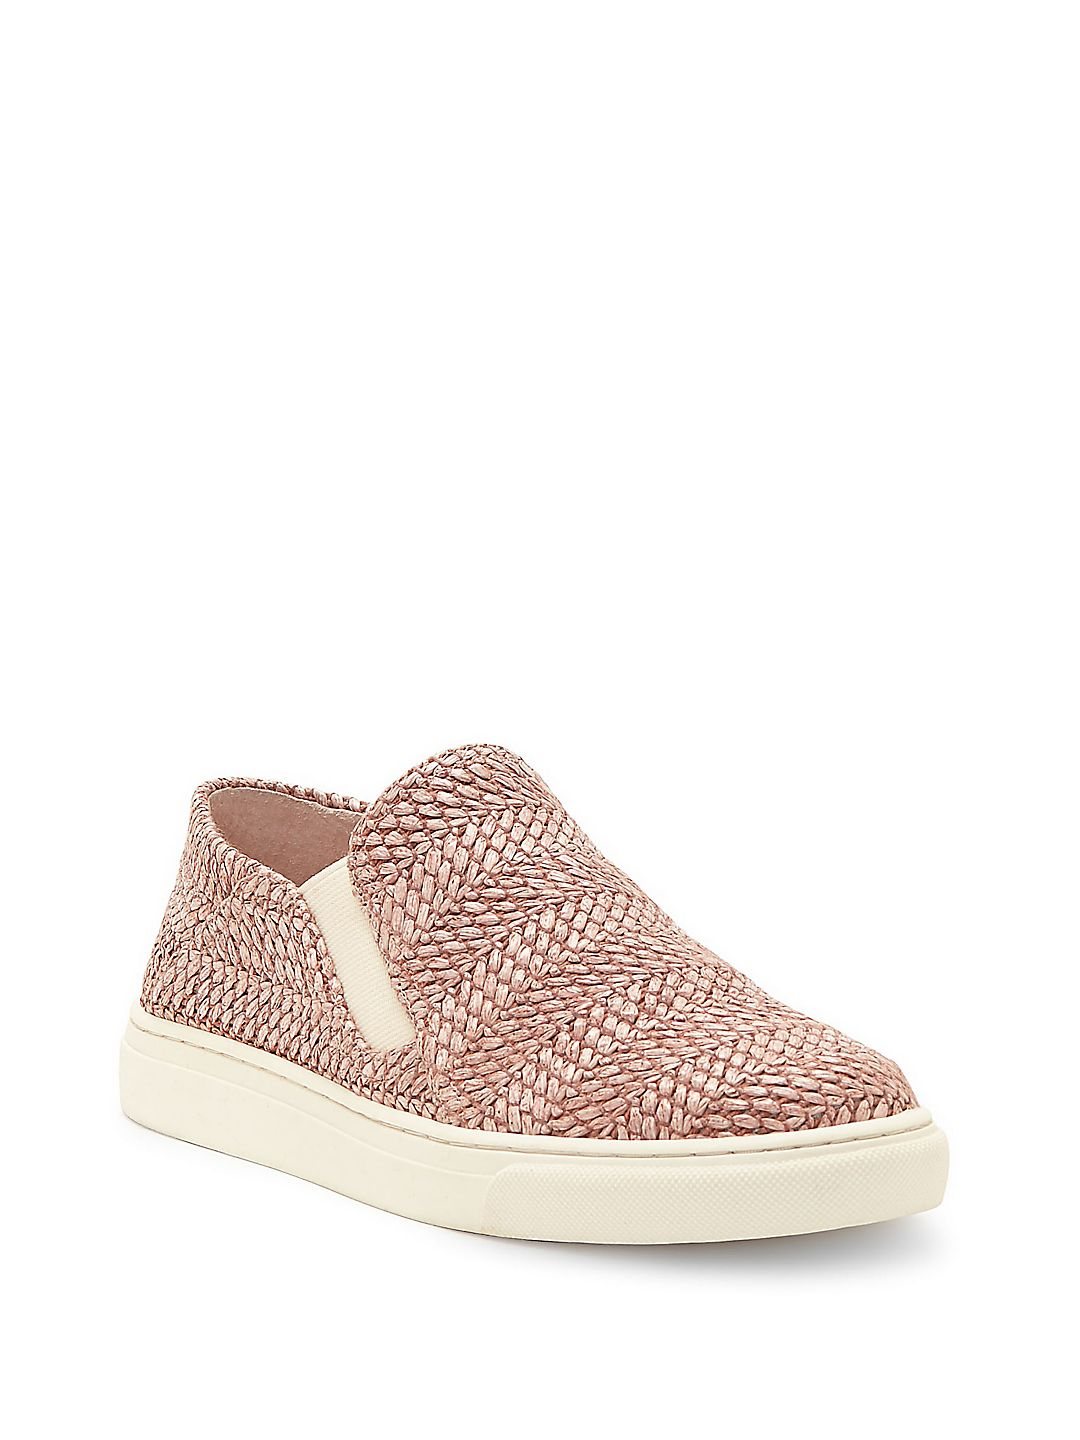 Lailom Woven Textile Sneakers